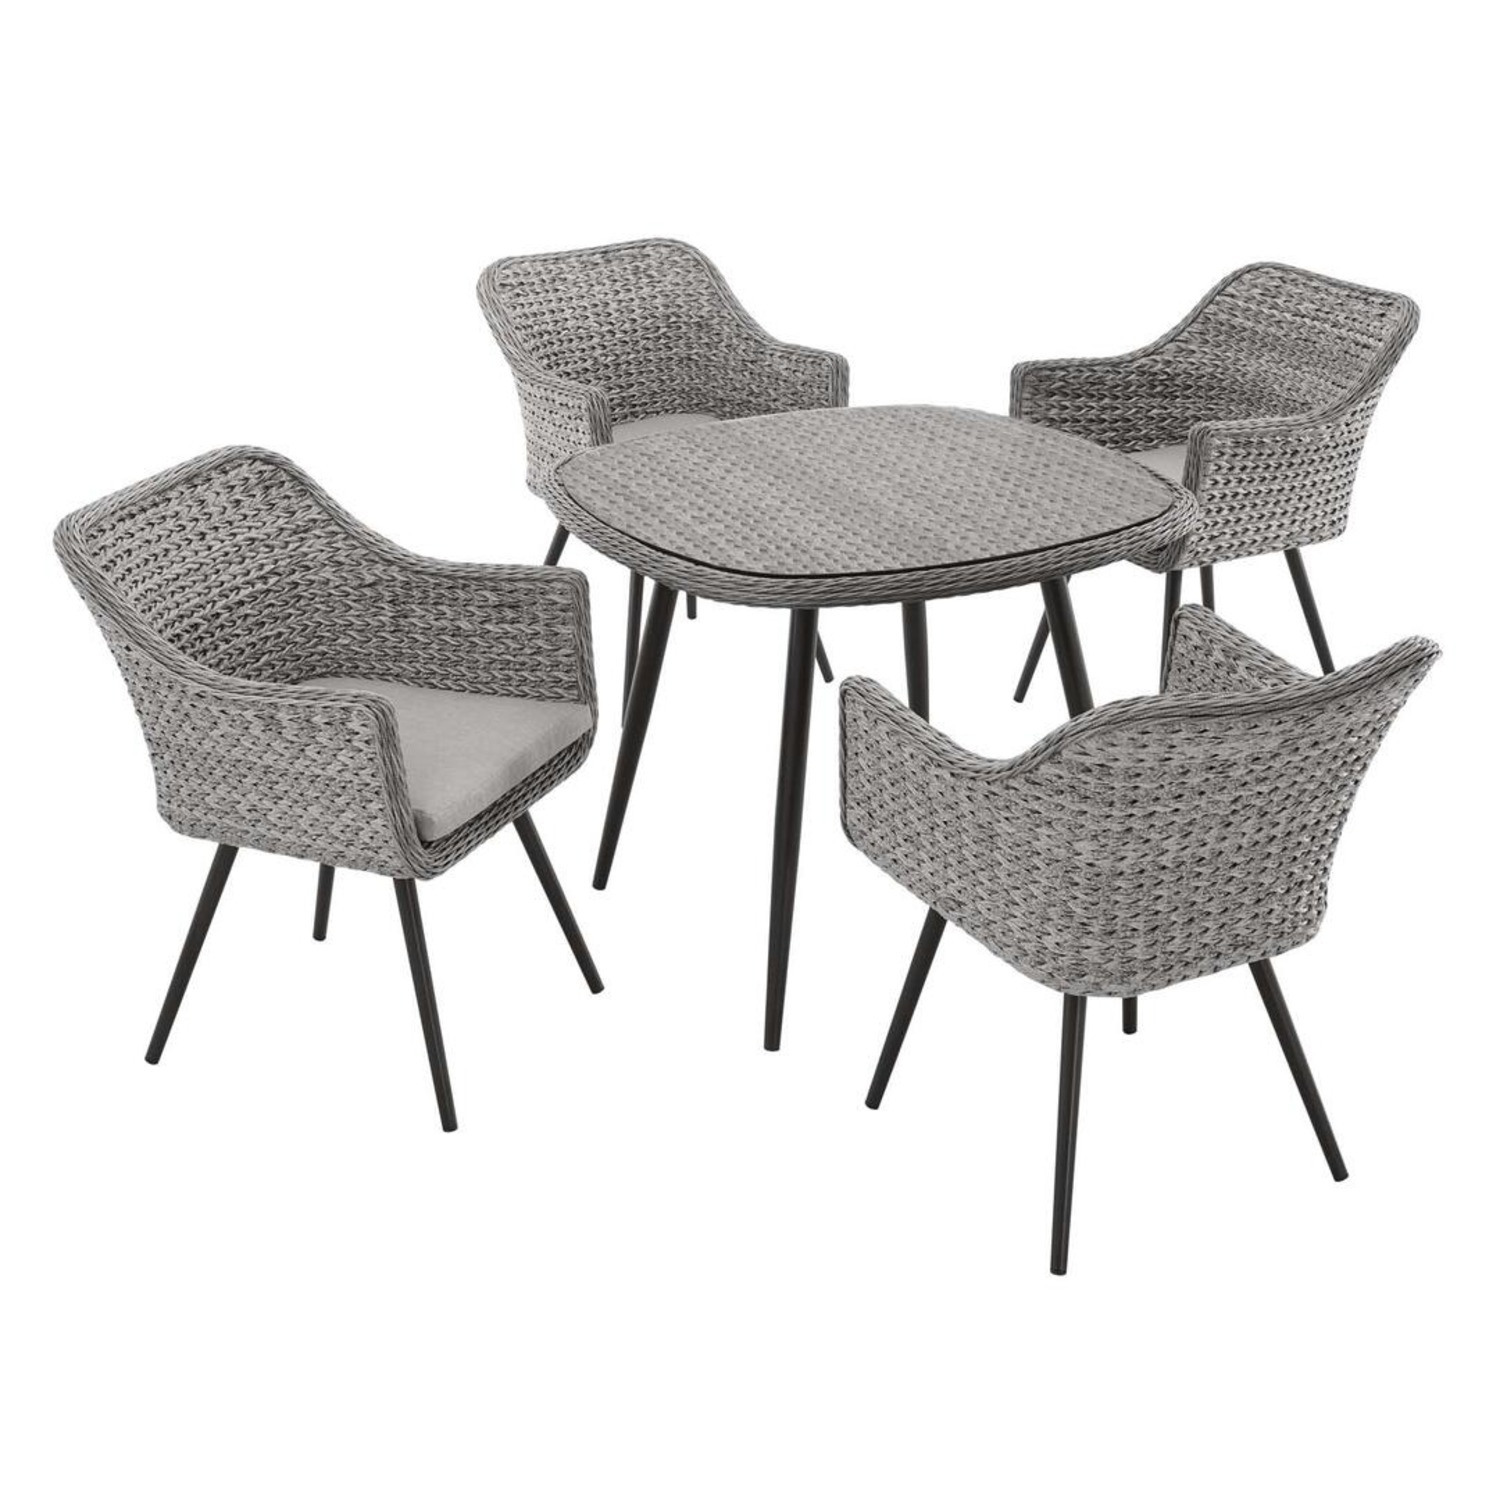 Modern 5-Piece Dining Set In Gray-On-Gray Tone - image-1